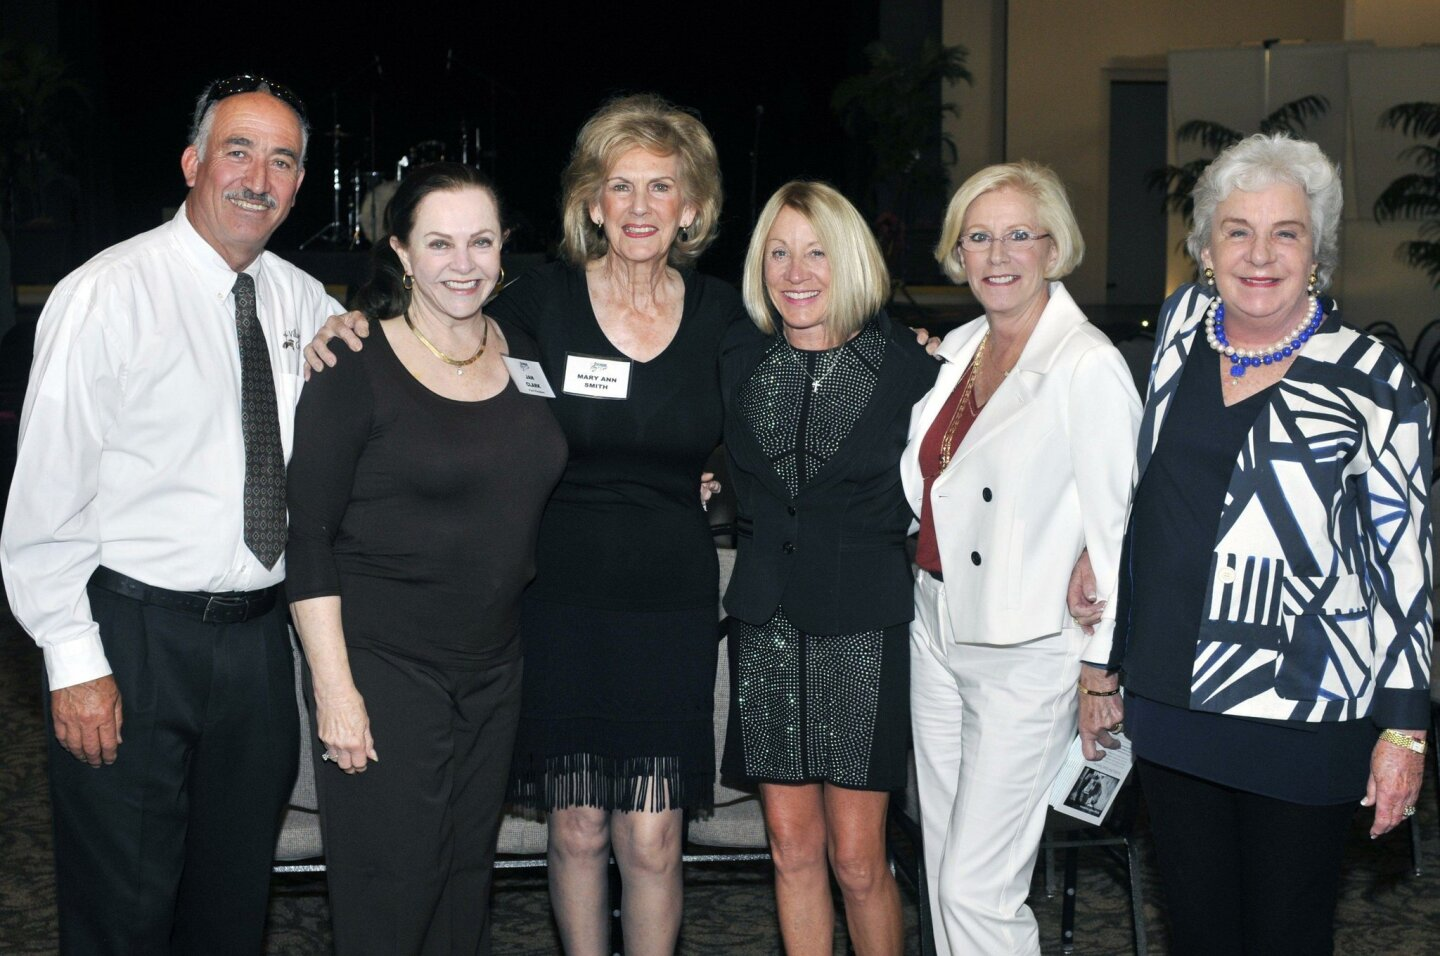 Gustavo Coria, Jan Clark, Mary Ann Smith, Martha Dominguez, Donna Vance, Carol Keeney